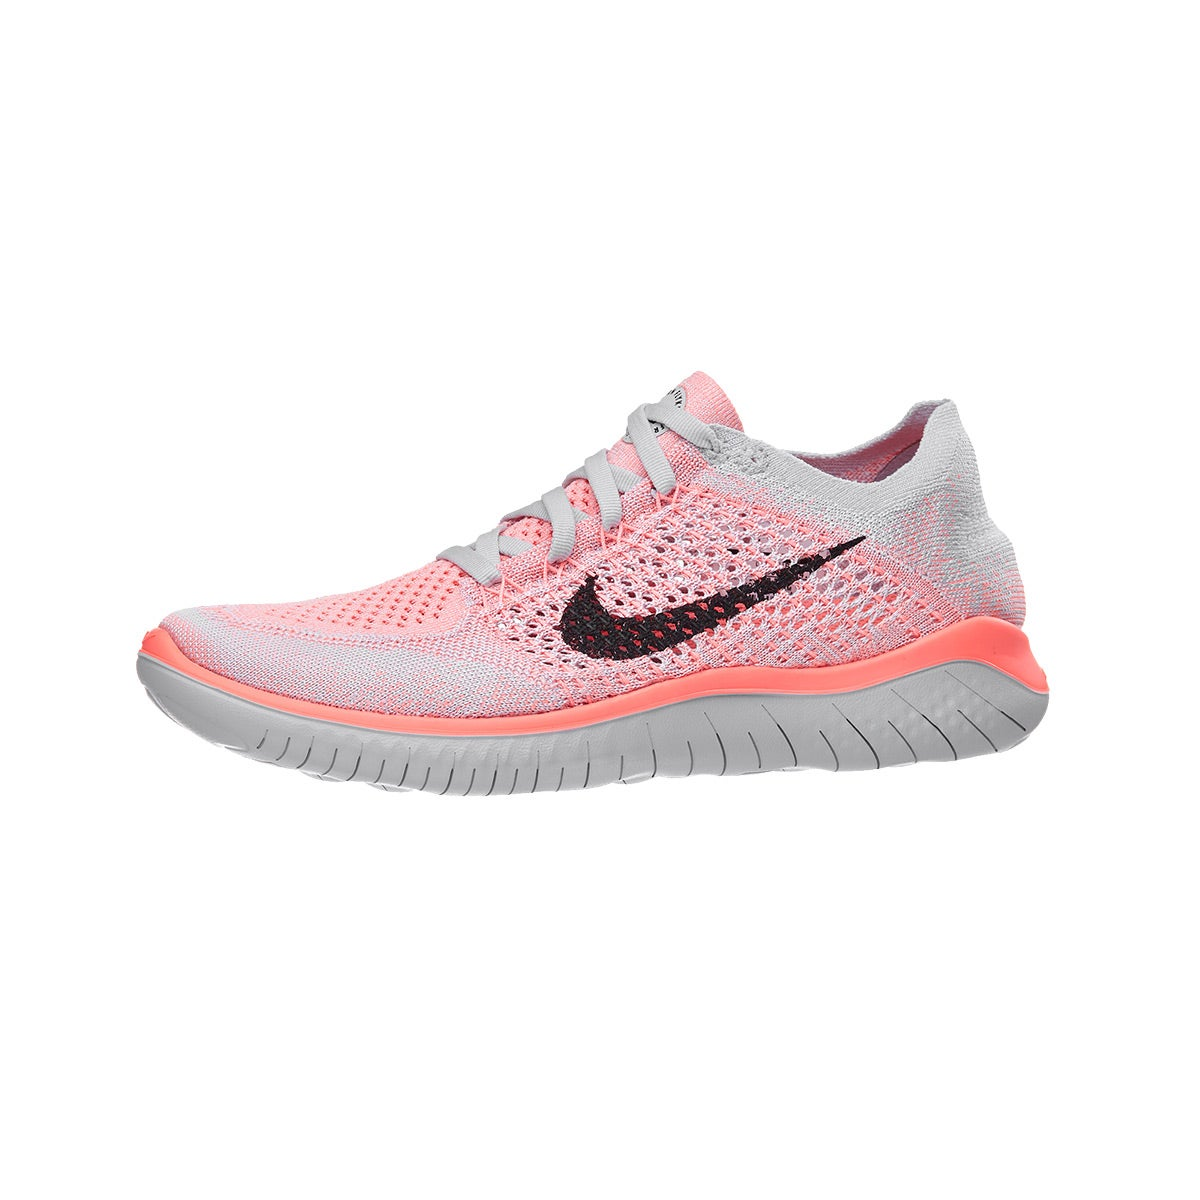 innovative design e9cc4 f8172 ... release date nike free rn flyknit 2018 womens shoes crimson black 360  view running warehouse.